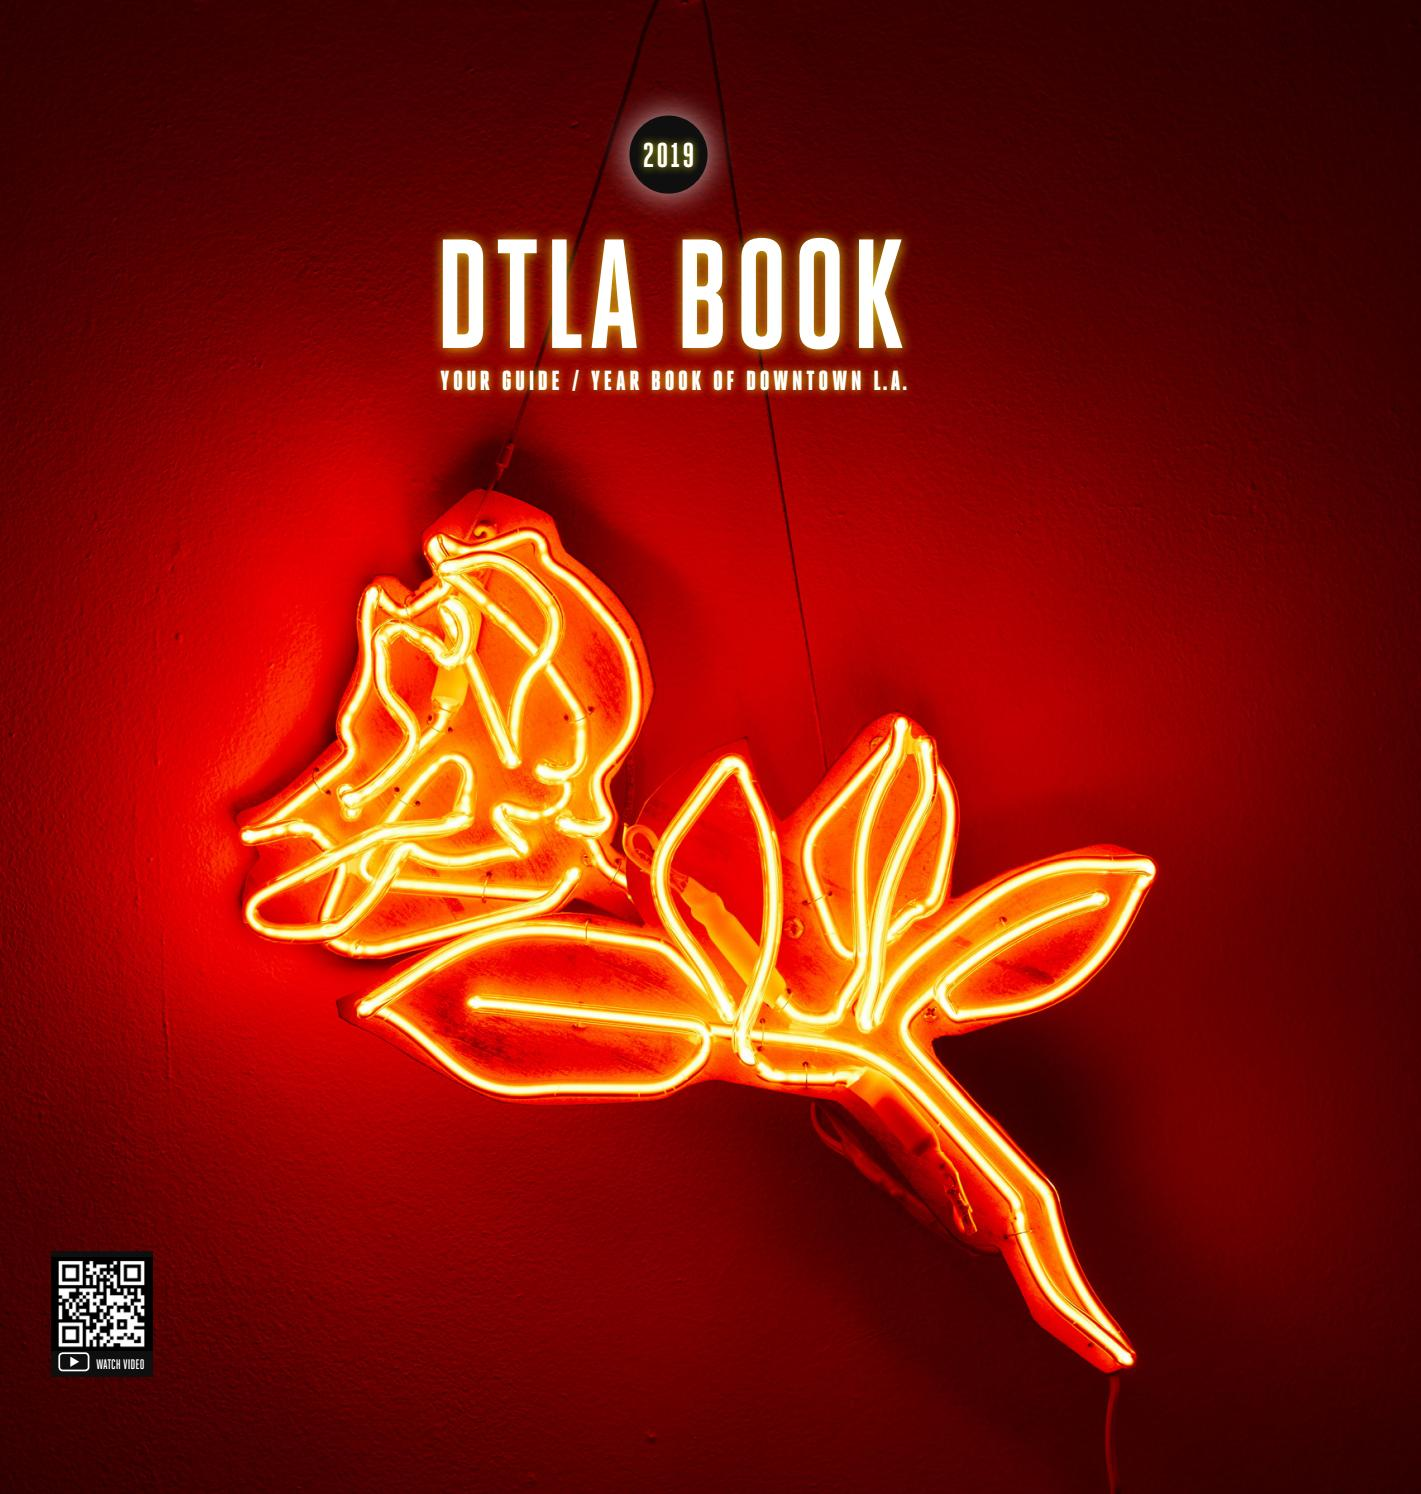 820795ee2f DTLA Book 2019 (Digital Version) by District 8 Media - issuu